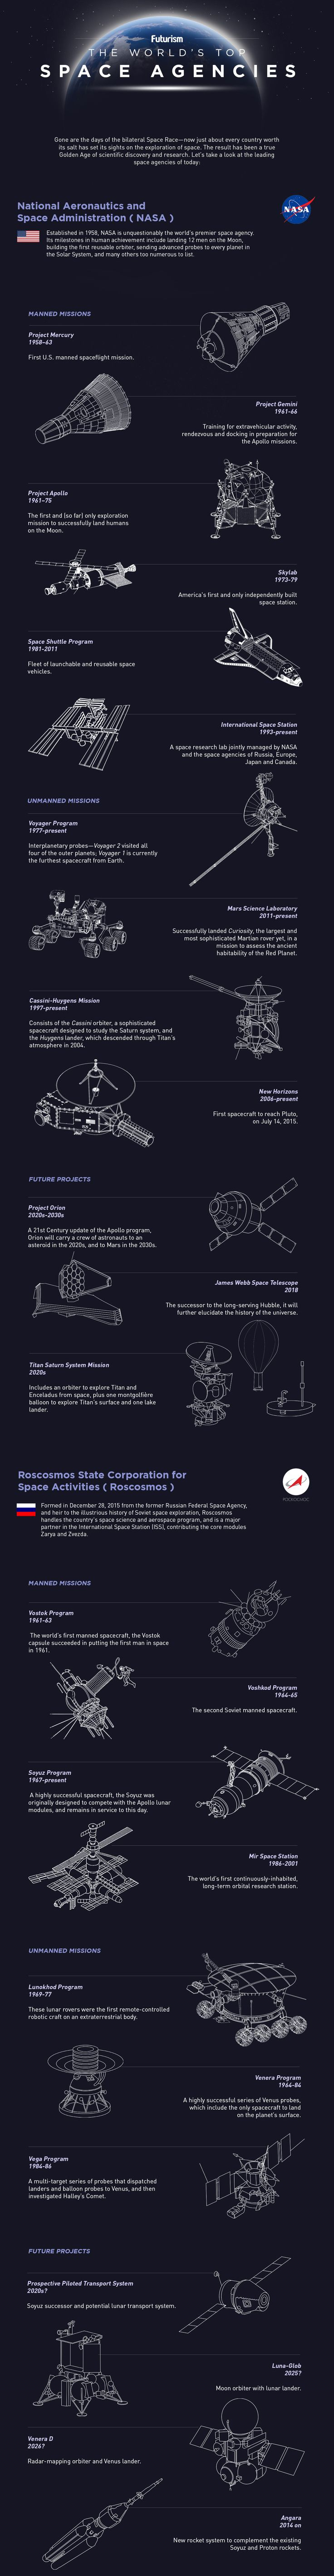 The high frontier's getting crowded—a new space race is underway. Here's a look at the past, present, and future projects of the world's top space agencies.